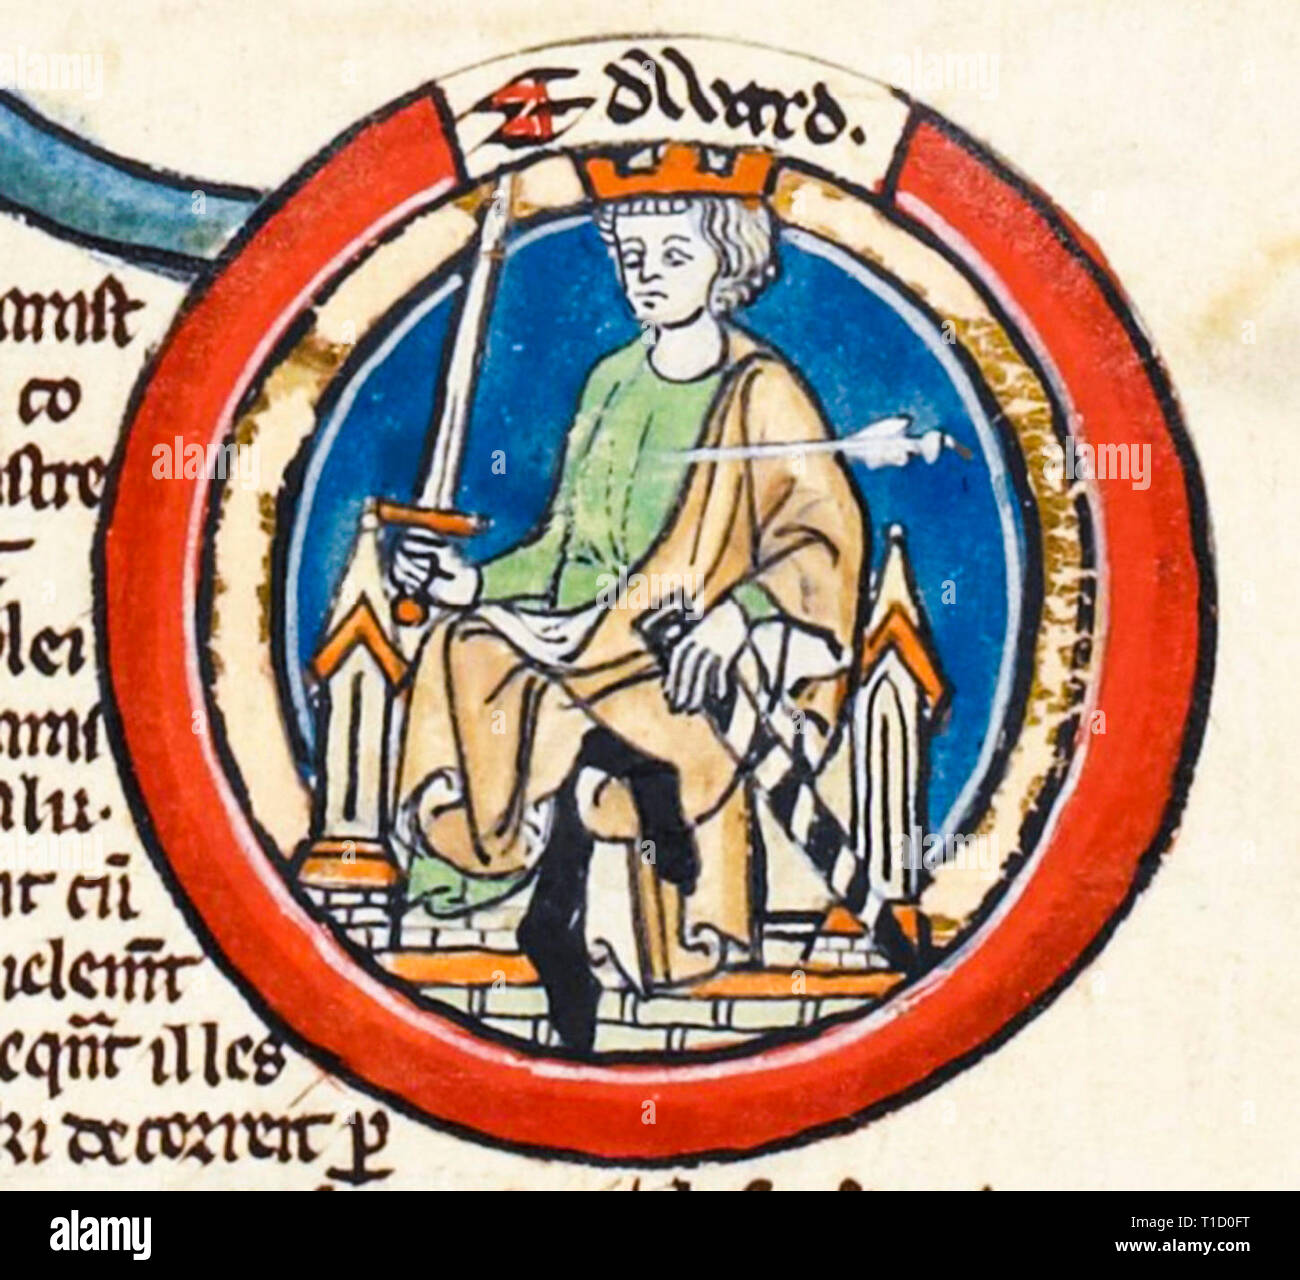 King Edward the Martyr (c. 962 - 978), portrait painting in the early 14th Century Genealogical Roll of the Kings of England - Stock Image